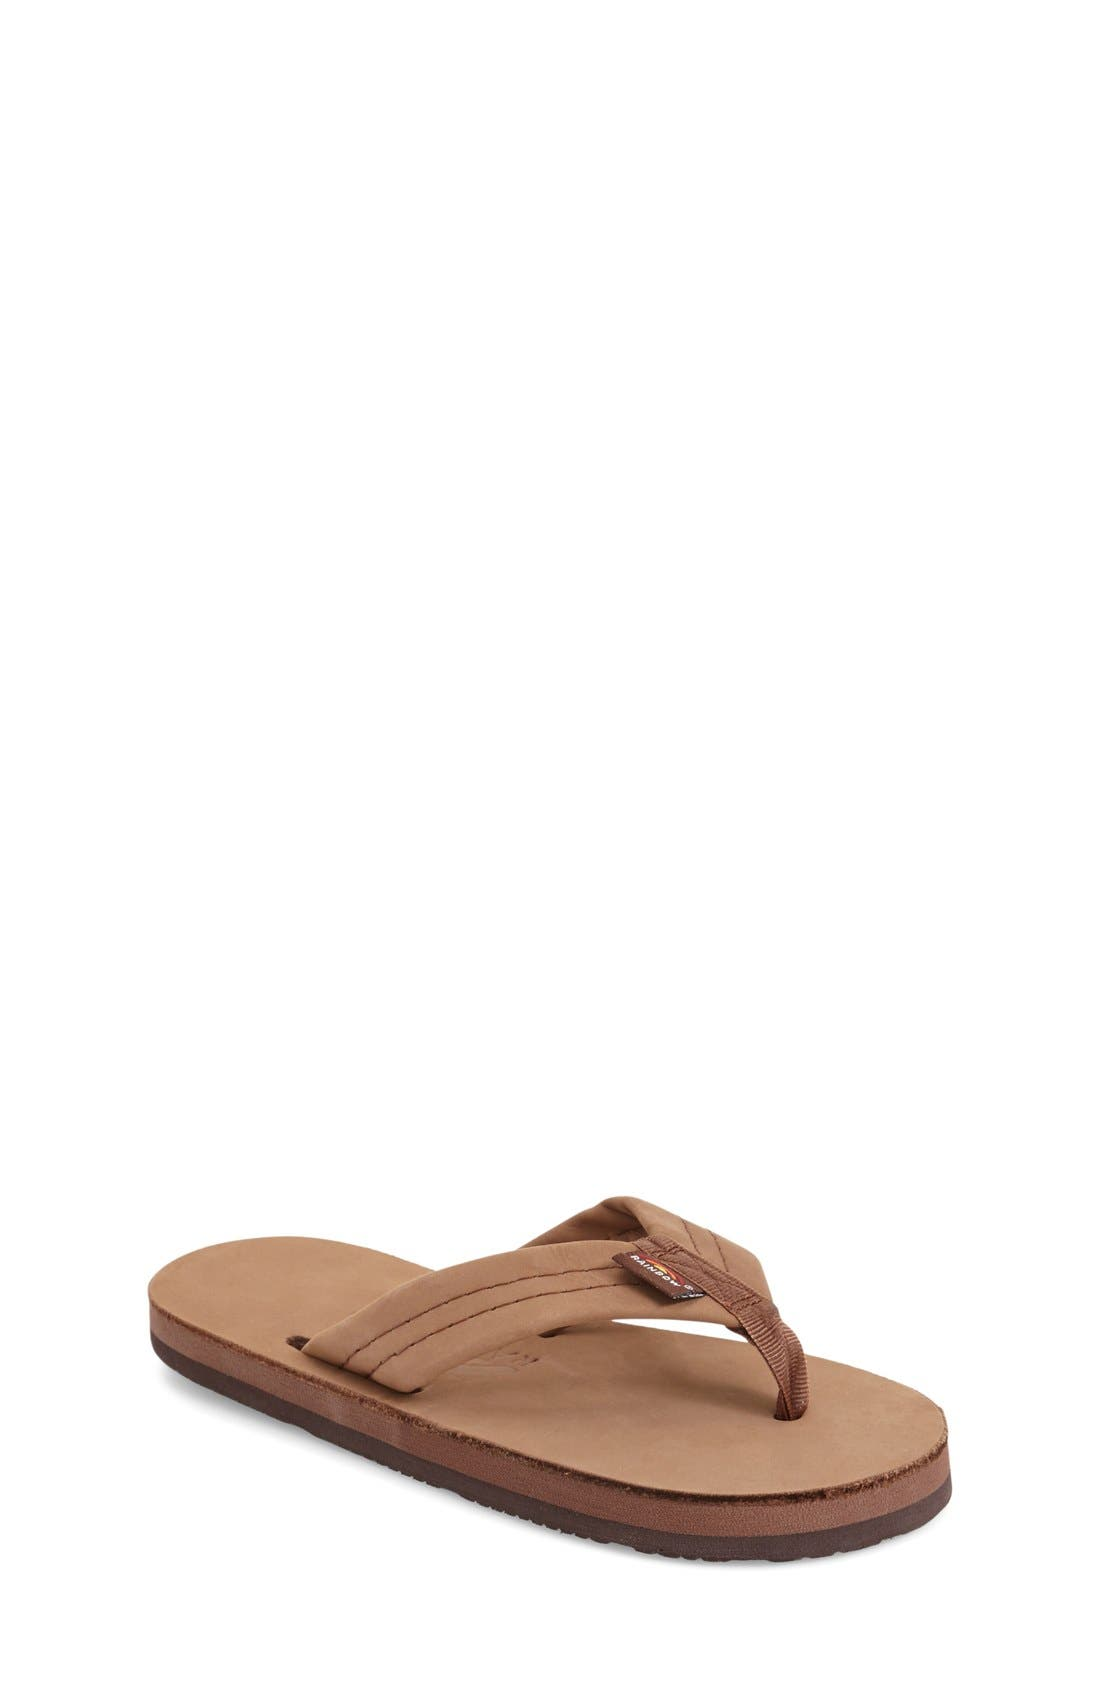 Rainbow Leather Sandal (Toddler, Little Kid & Big Kid)